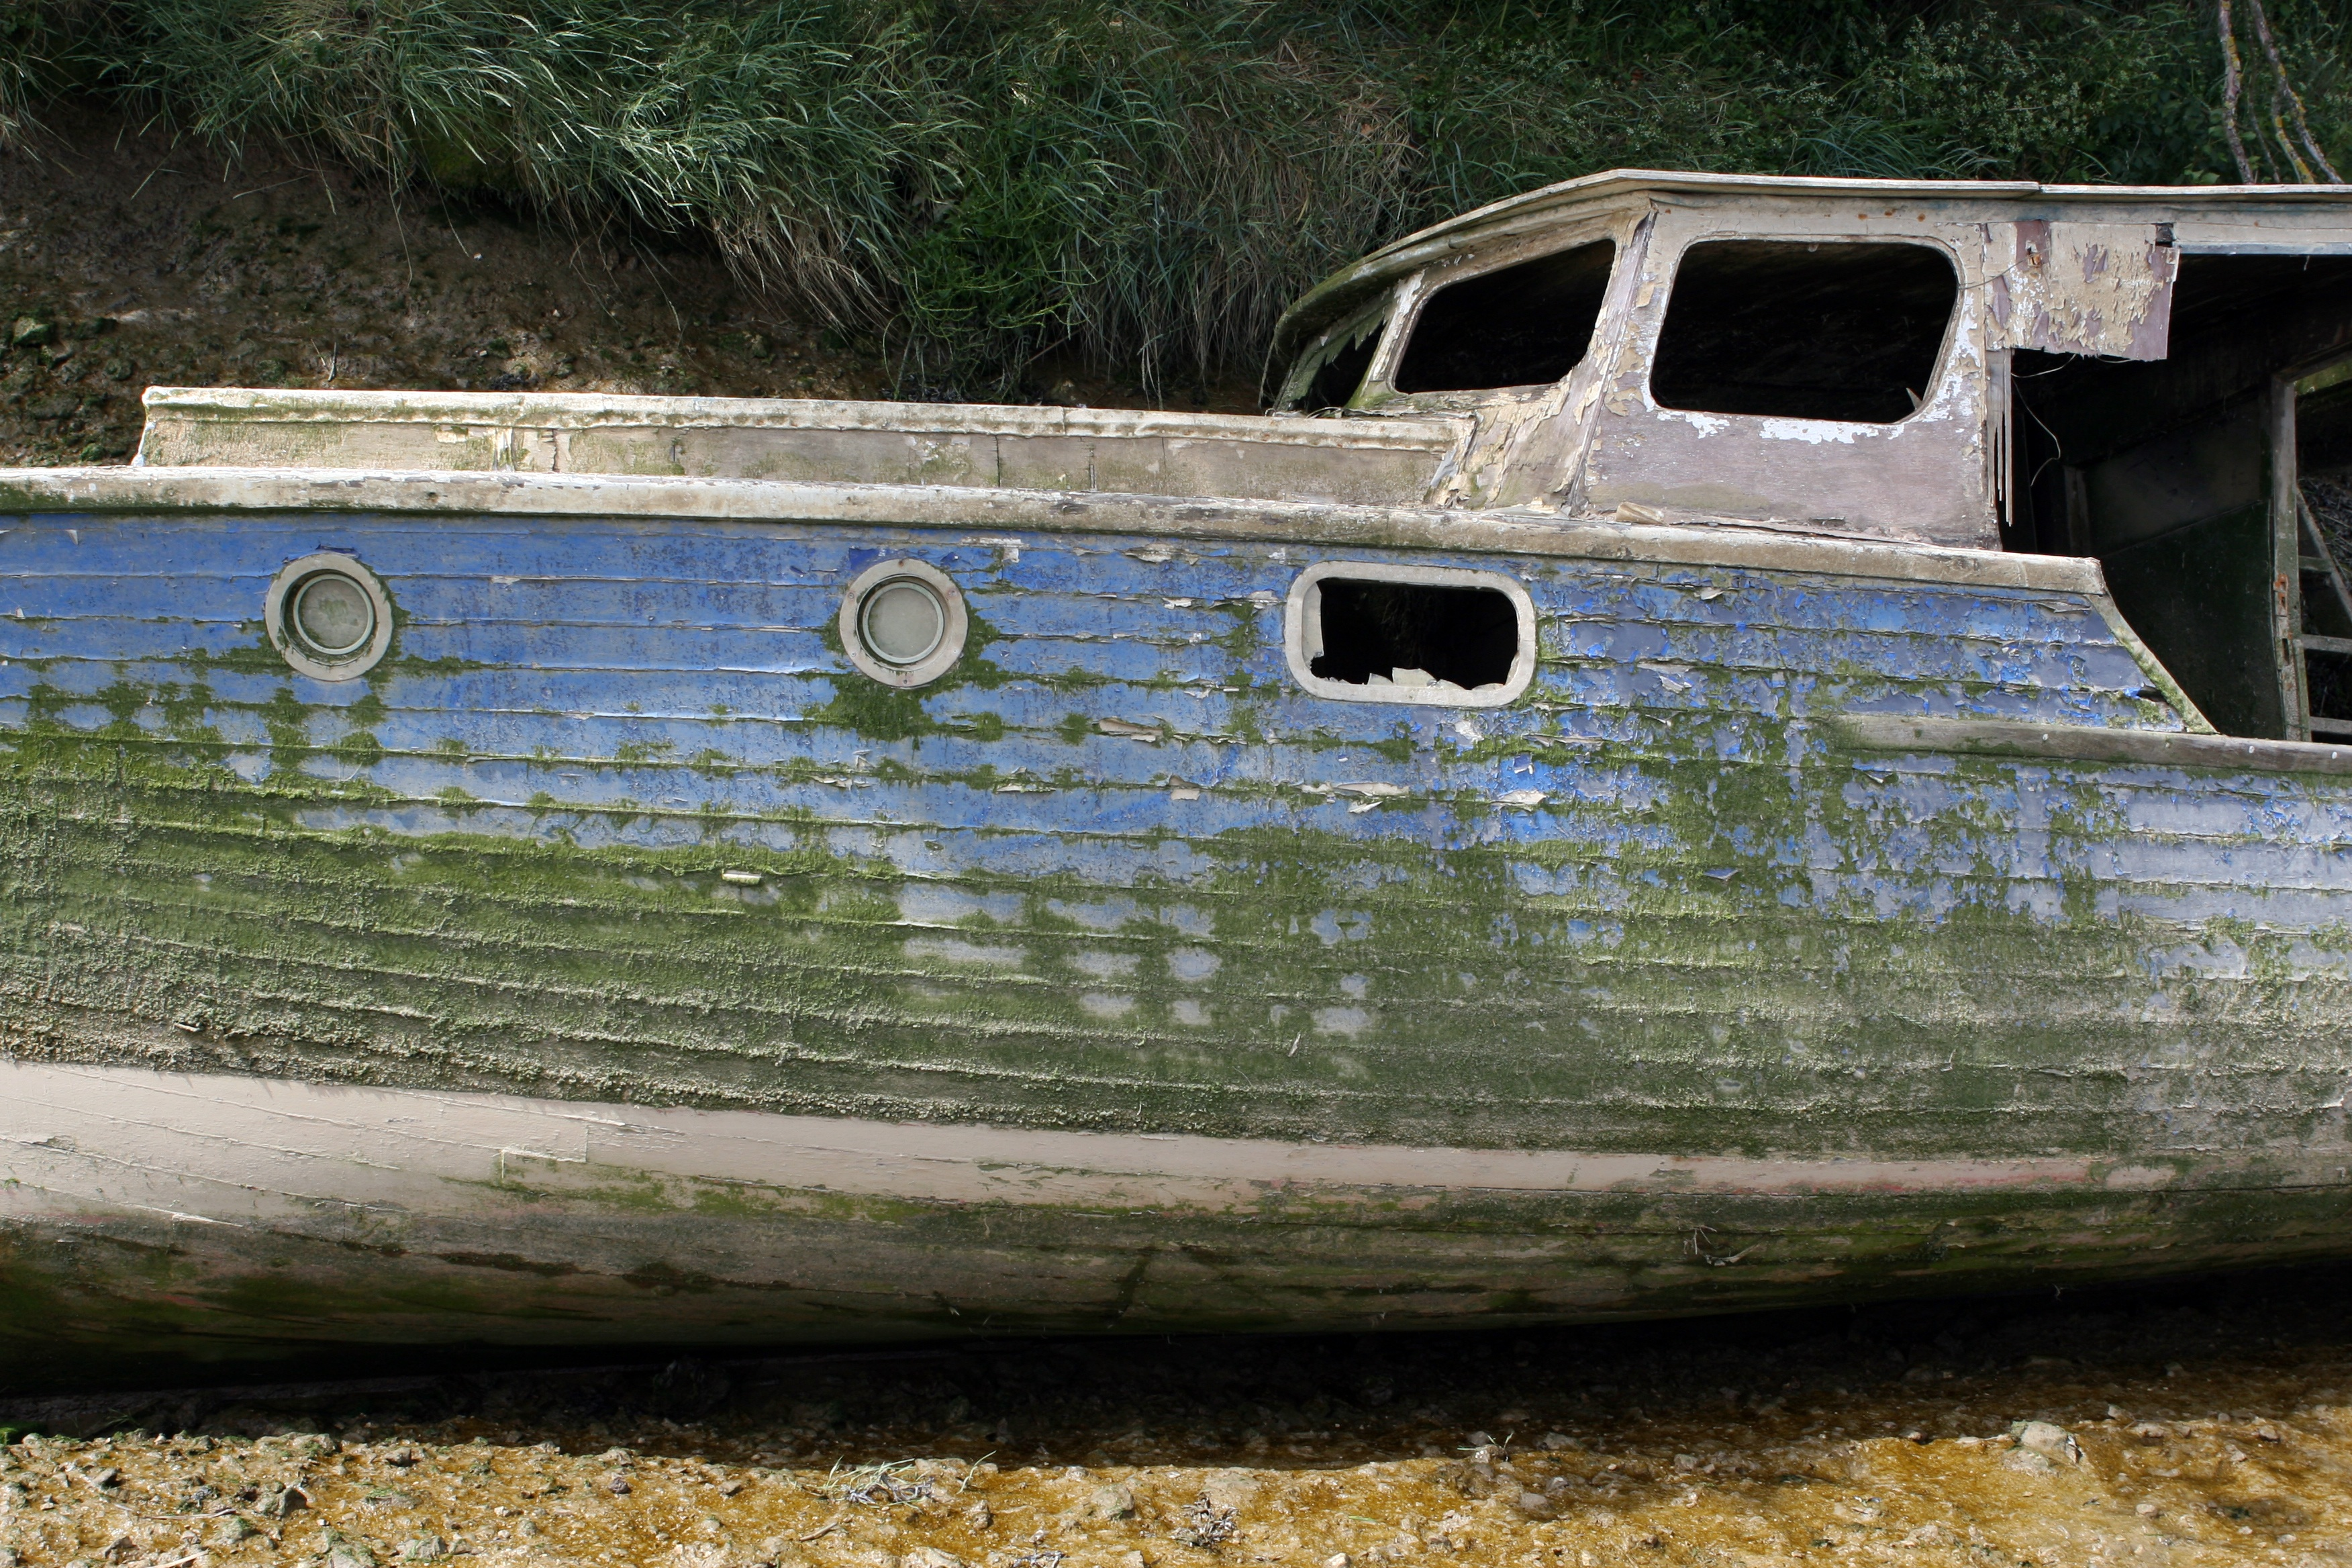 Old Boat, Boat, Old, Ship, Wood, HQ Photo